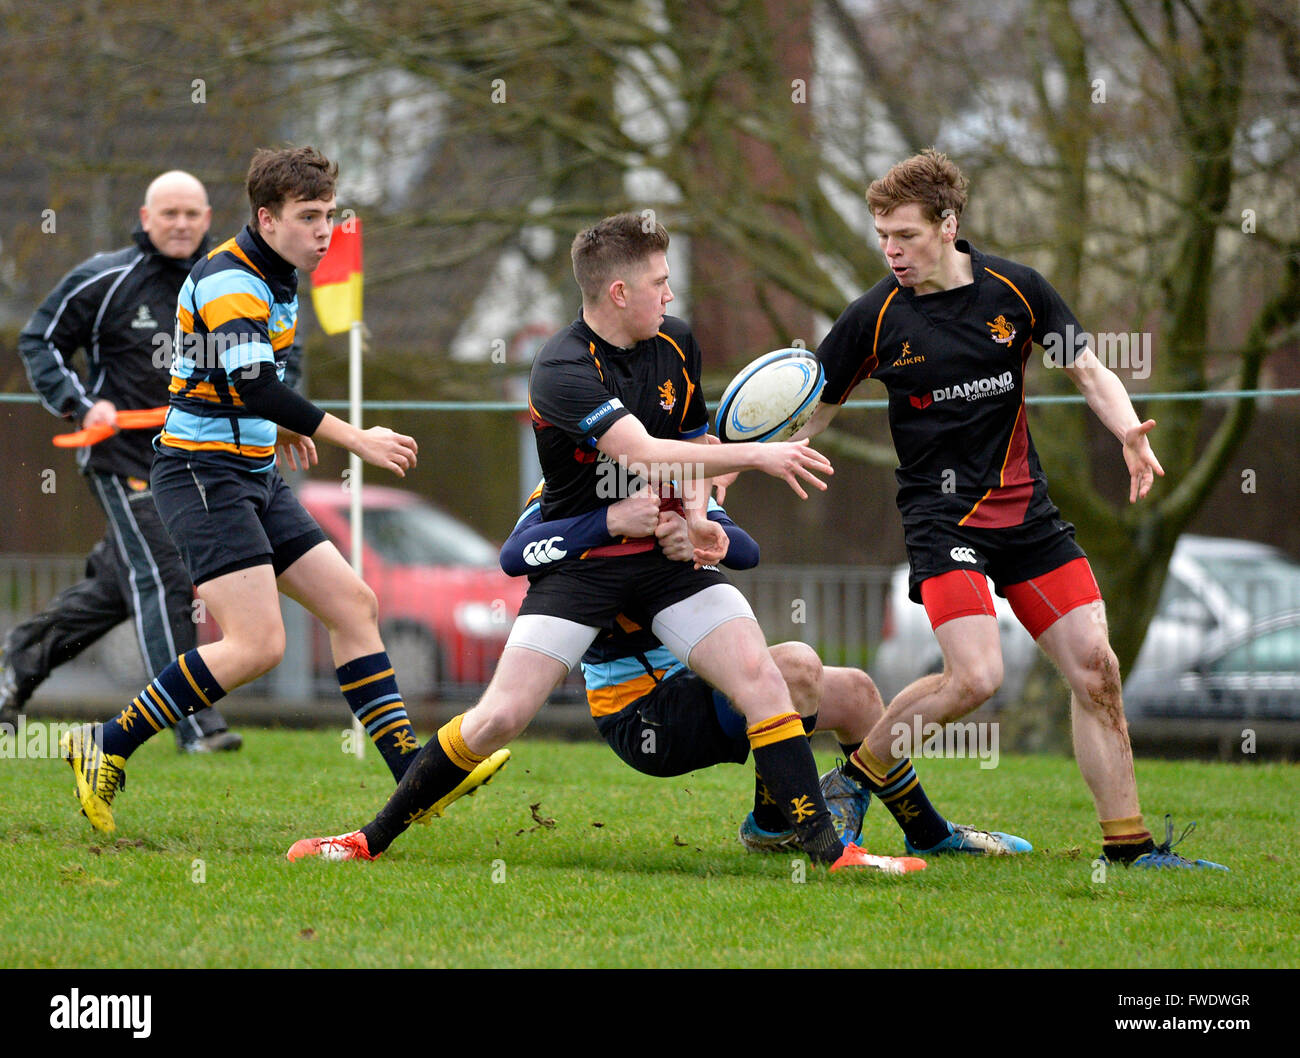 Northern Ireland schools rugby game between Foyle College and Antrim Grammar played in Londonderry, Northern Ireland - Stock Image